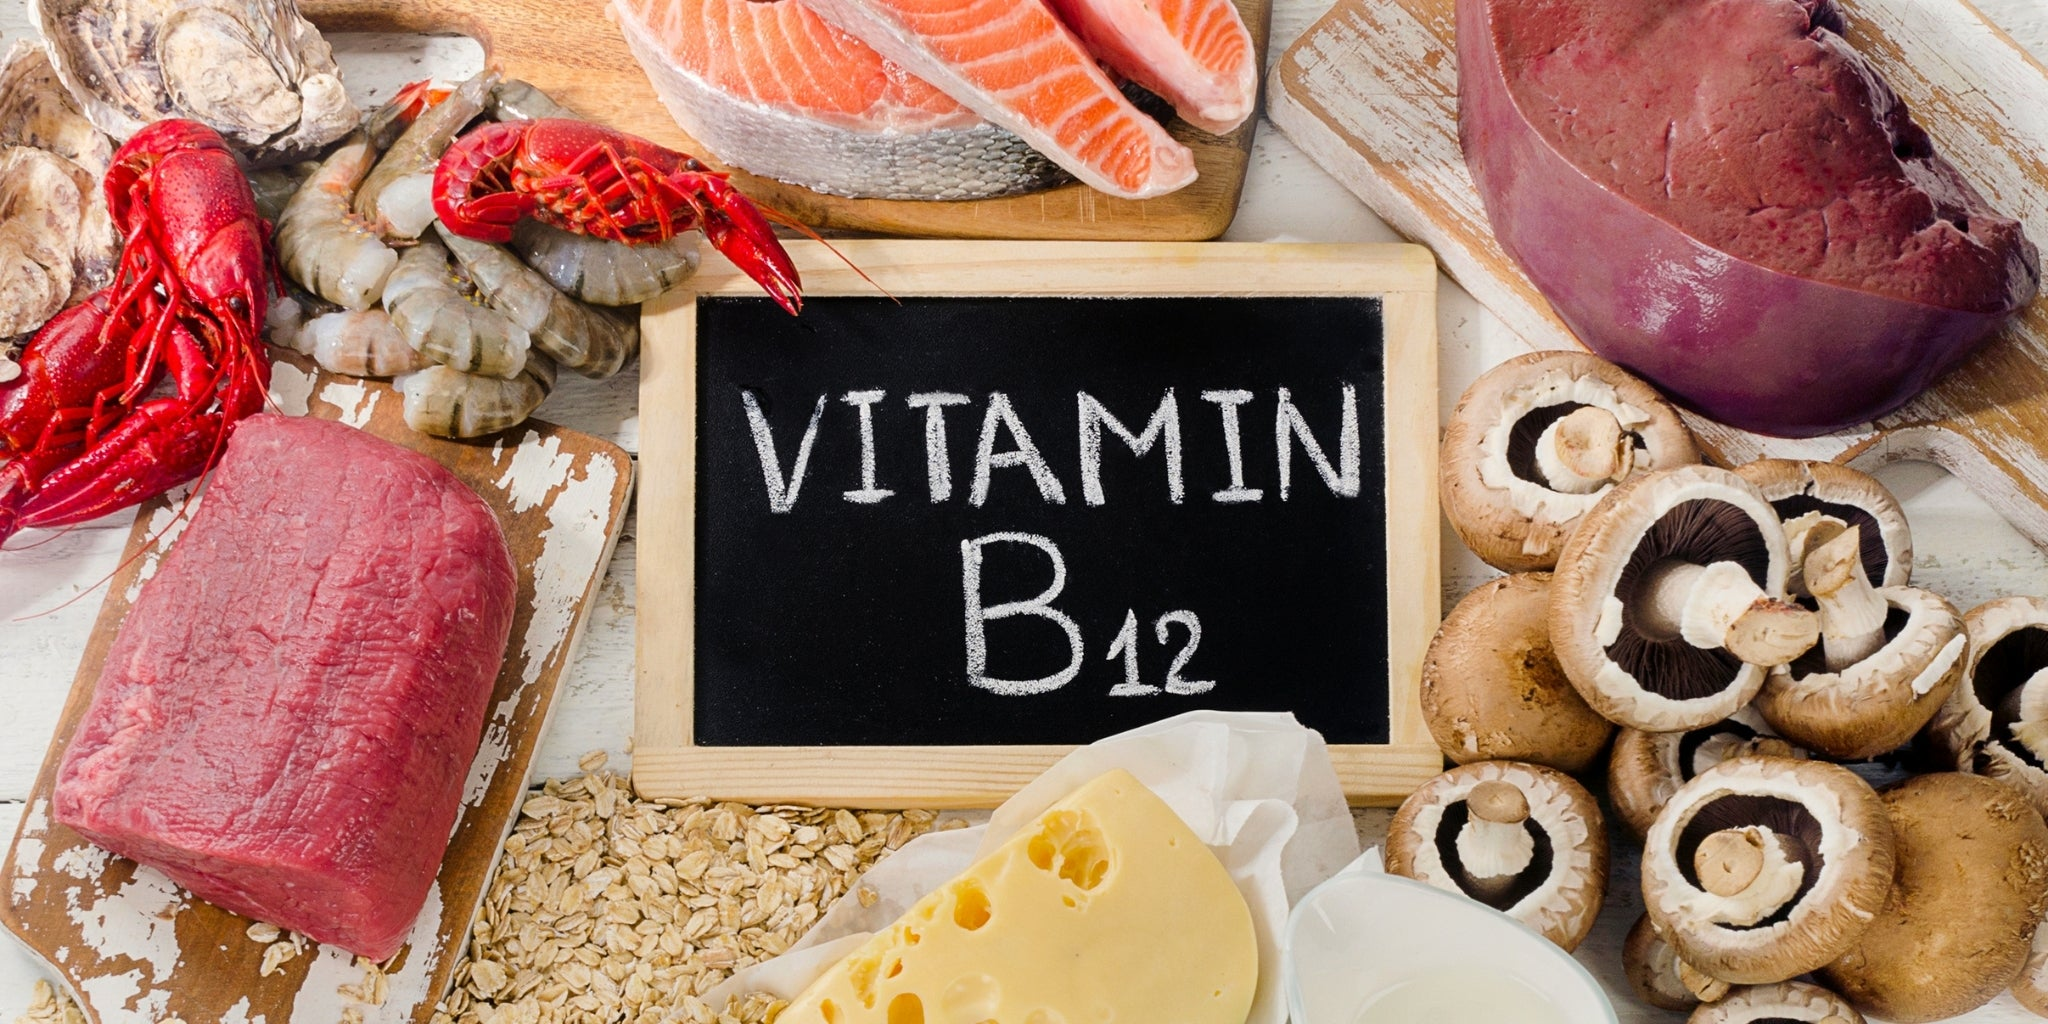 Vitamin B12 for Kids